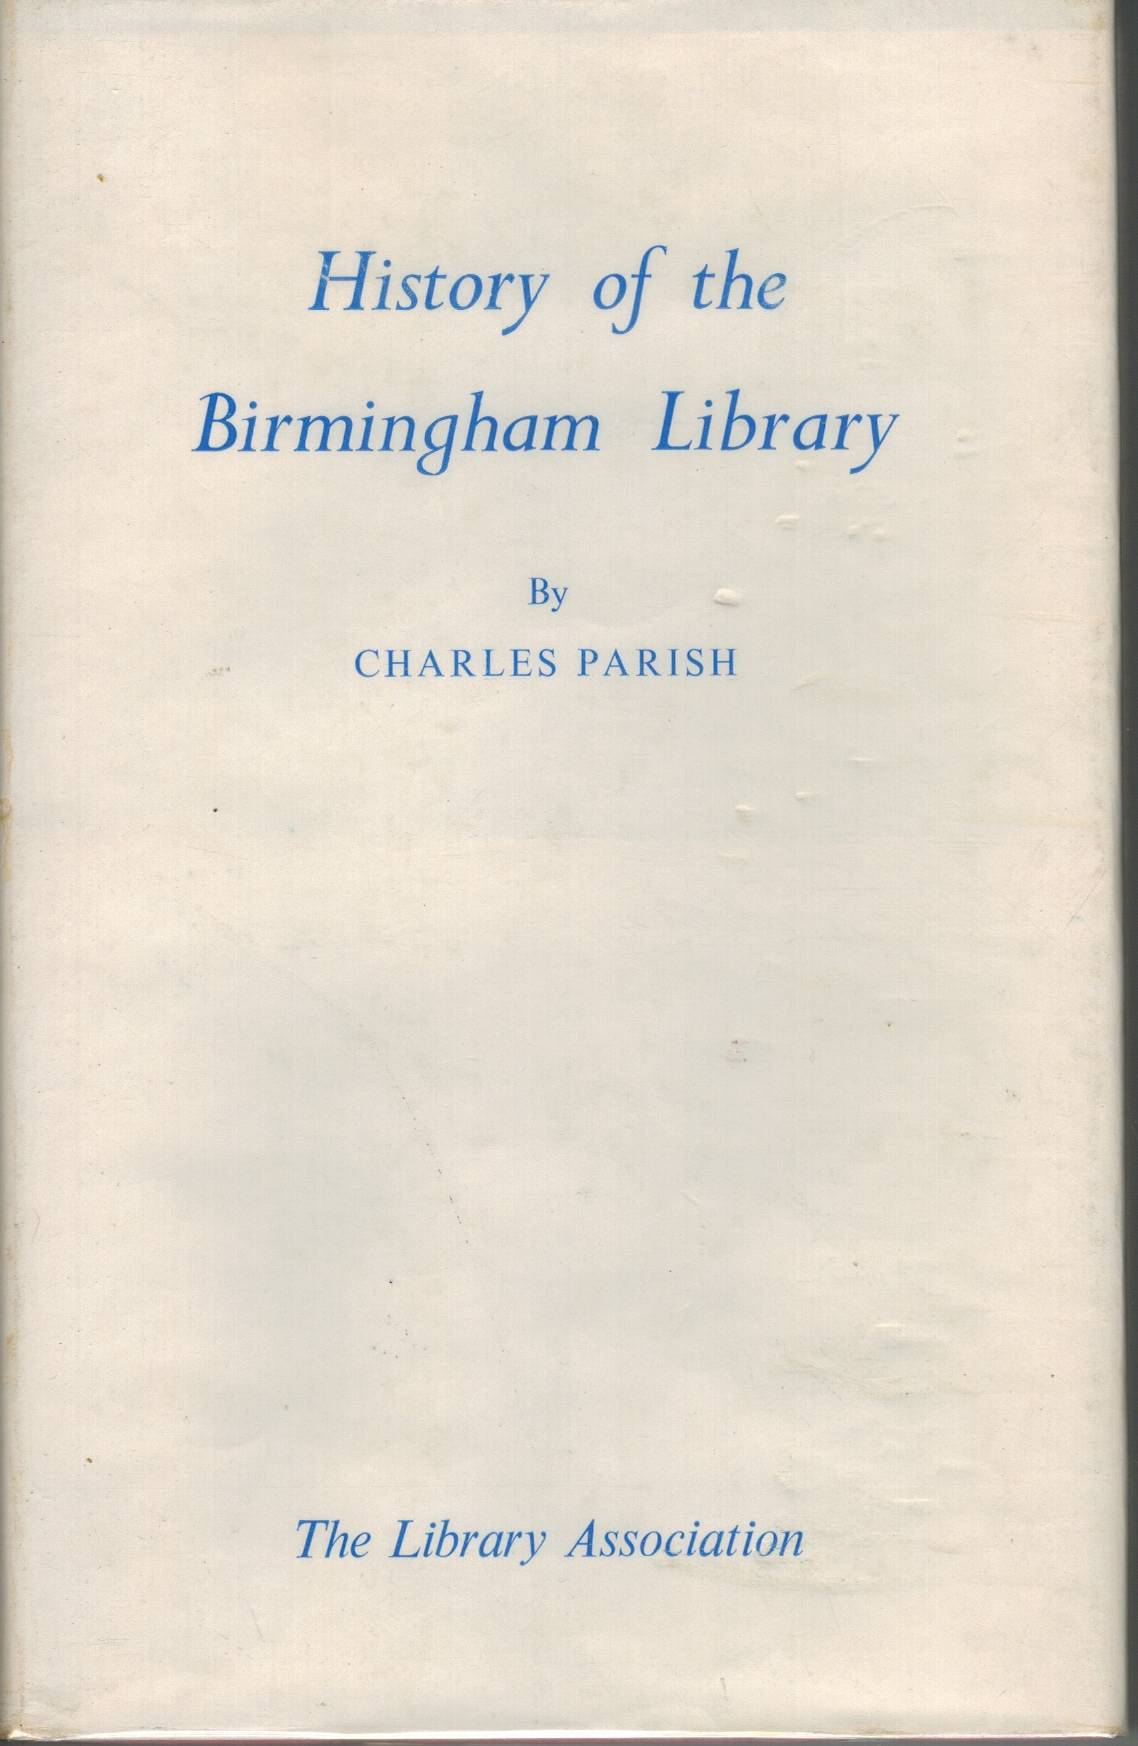 History of the Birmingham Library: An Eighteenth Century Proprietary  Library as Described in the Annal of the Birmingham Library, 1779-1799  with a Chapter on the Later history of the Library to 1955 - books-new